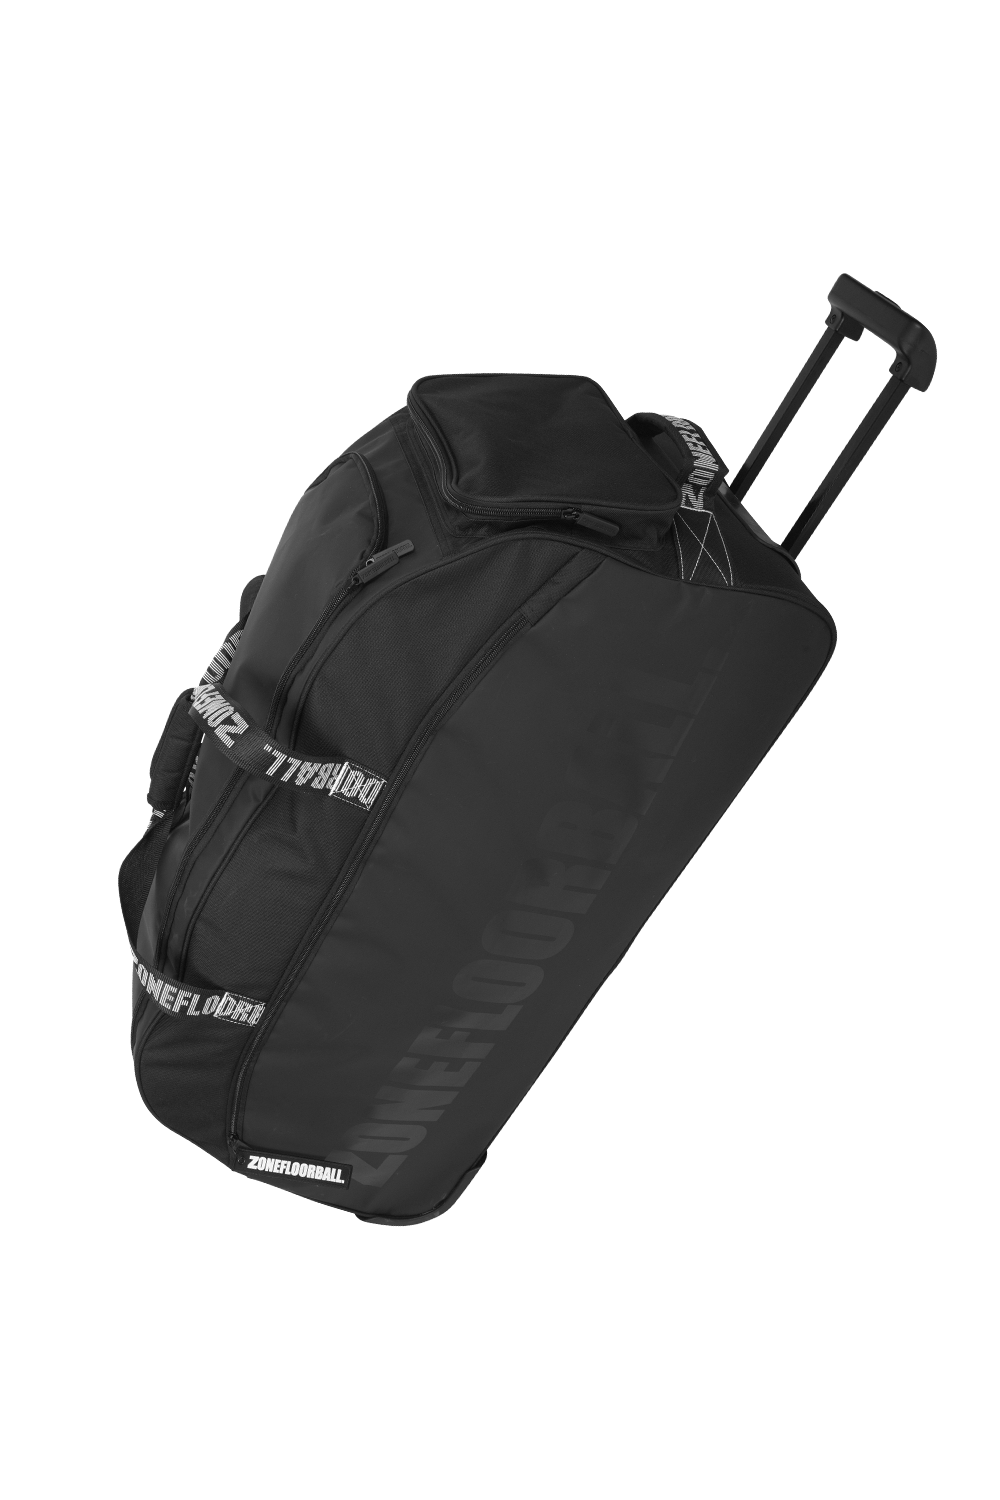 SPORT BAG BRILLIANT LARGE WITH WHEELS 120L.